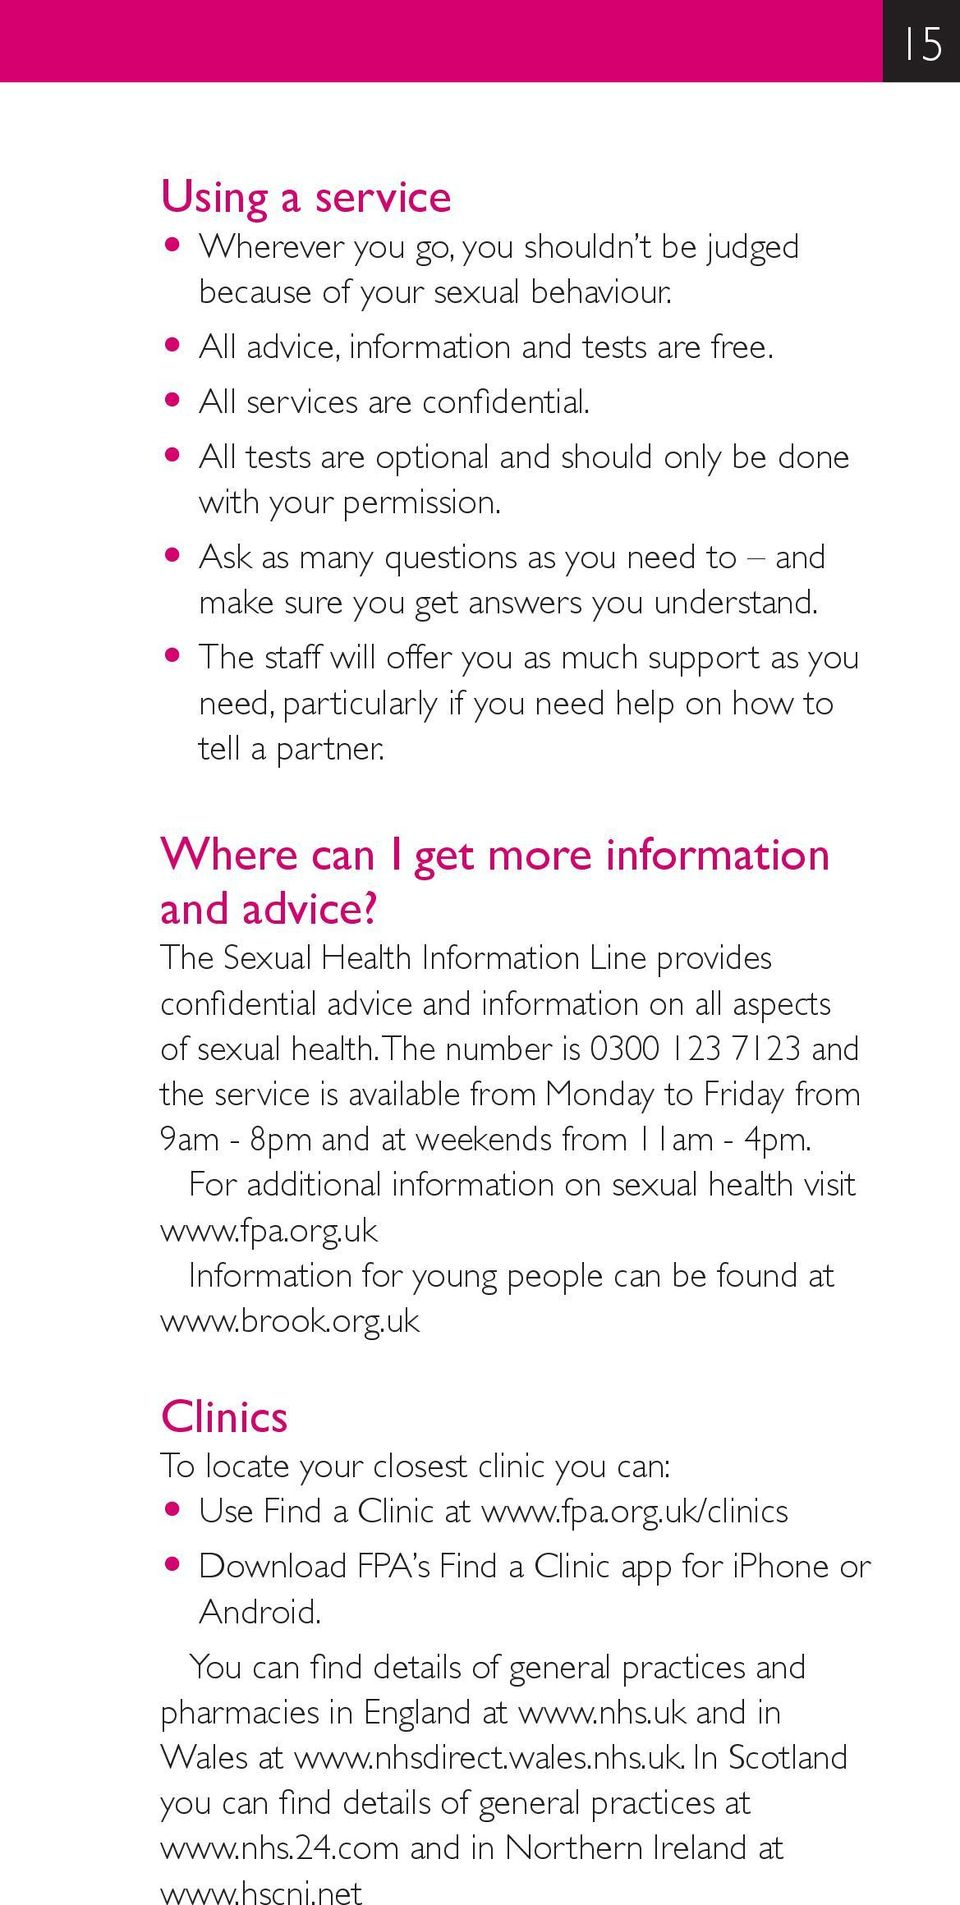 O The staff will offer you as much support as you need, particularly if you need help on how to tell a partner. Where can I get more information and advice?